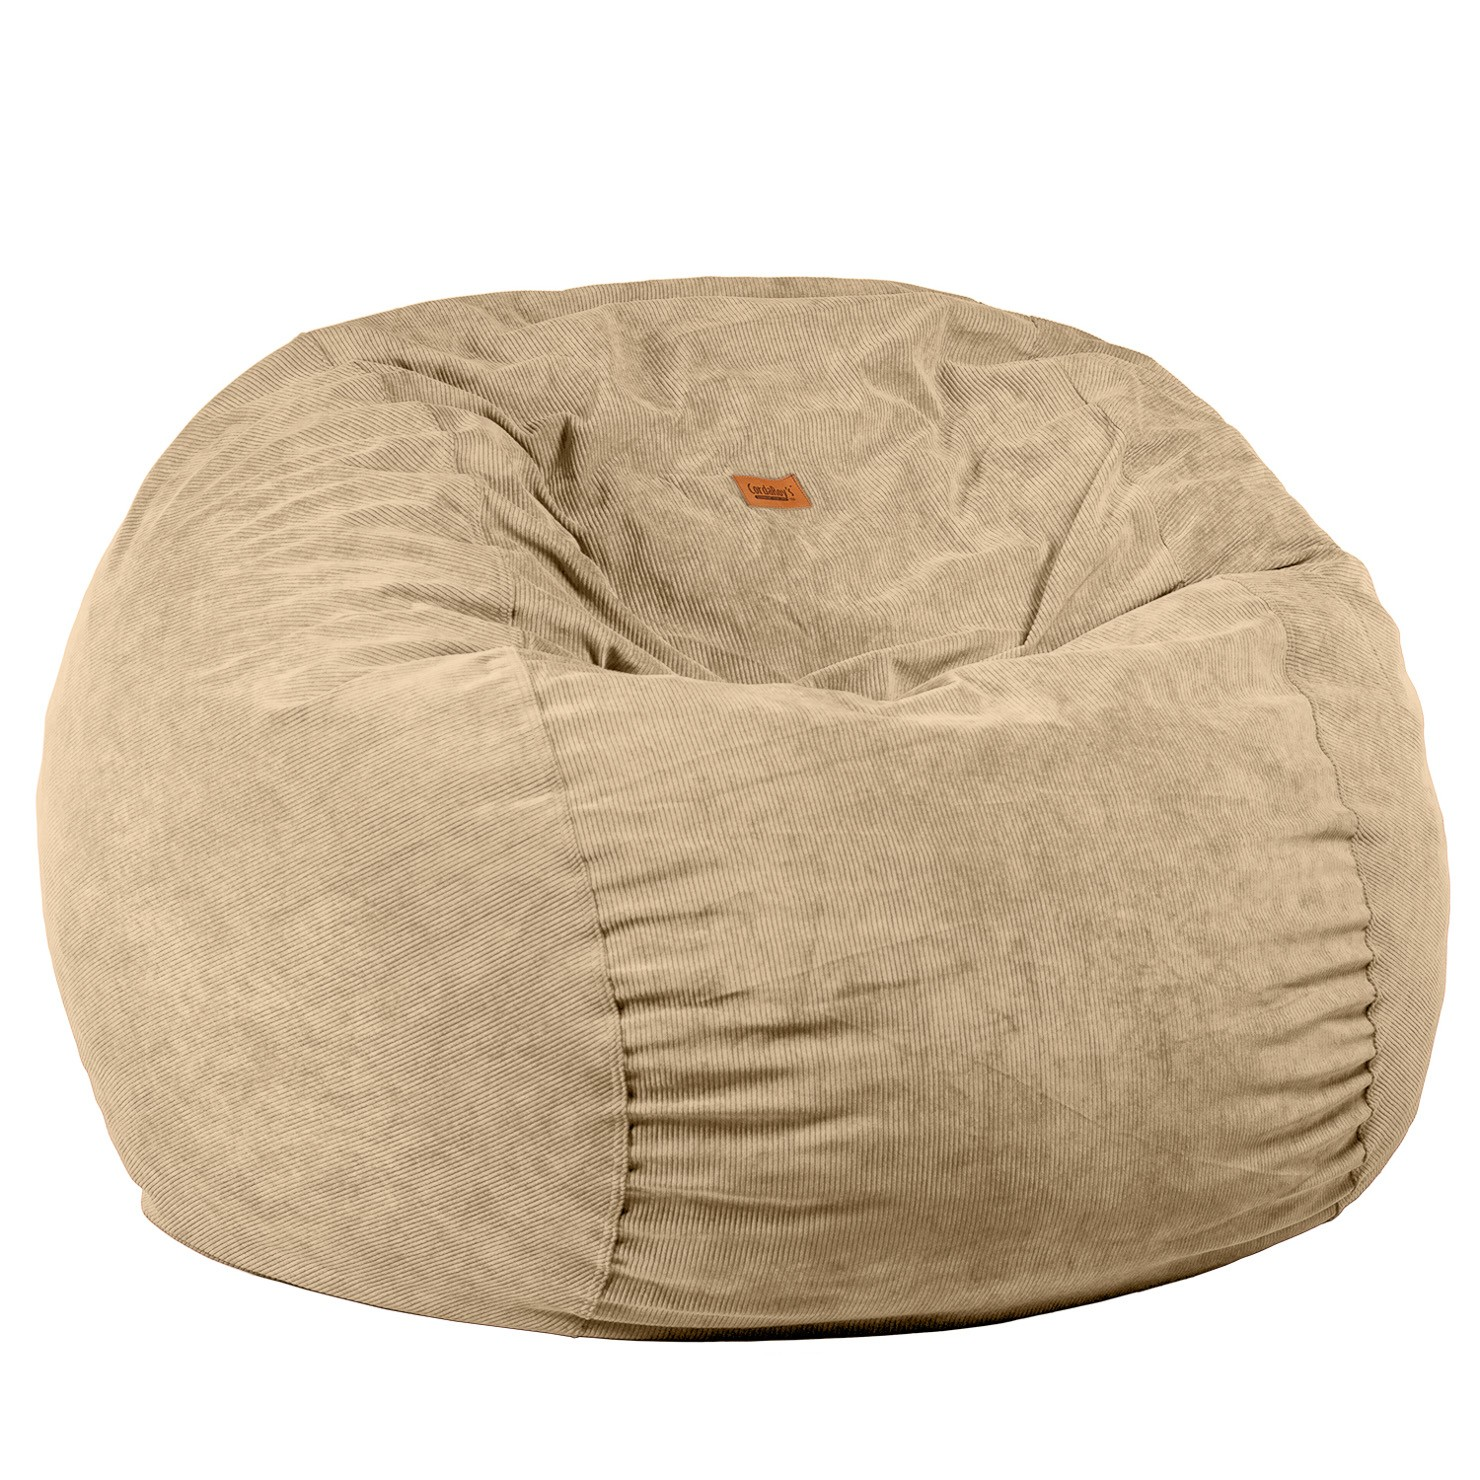 Corduroy Bean Bag Sleeper Full Khaki Cordaroy